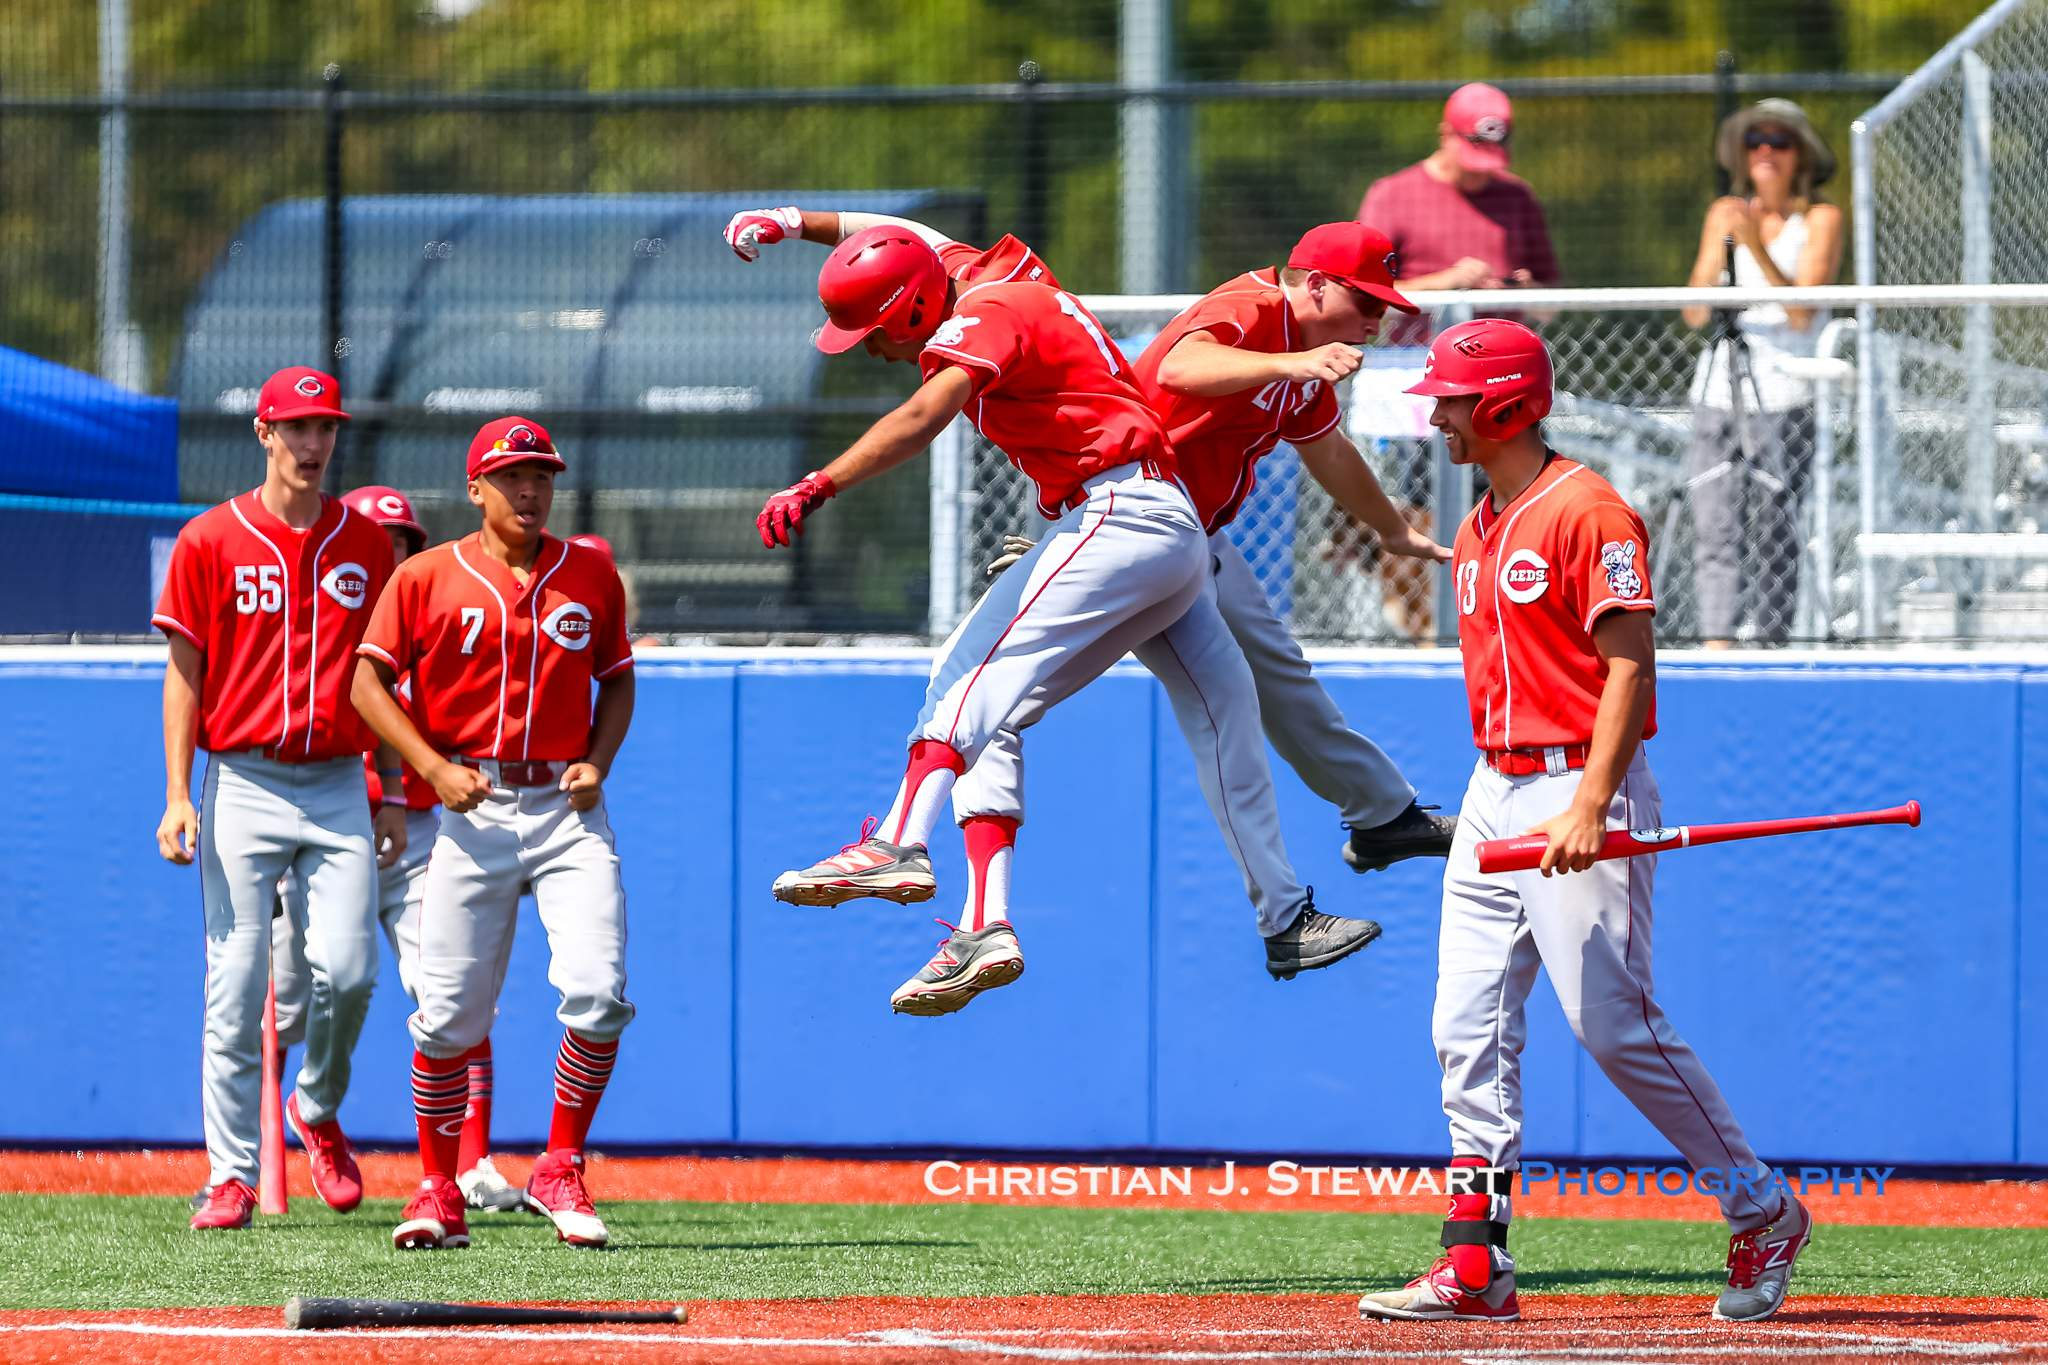 The Coquitlam Reds celebrate their go-ahead runs in the top of the sixth inning Saturday (Photo: Christian J. Stewart)